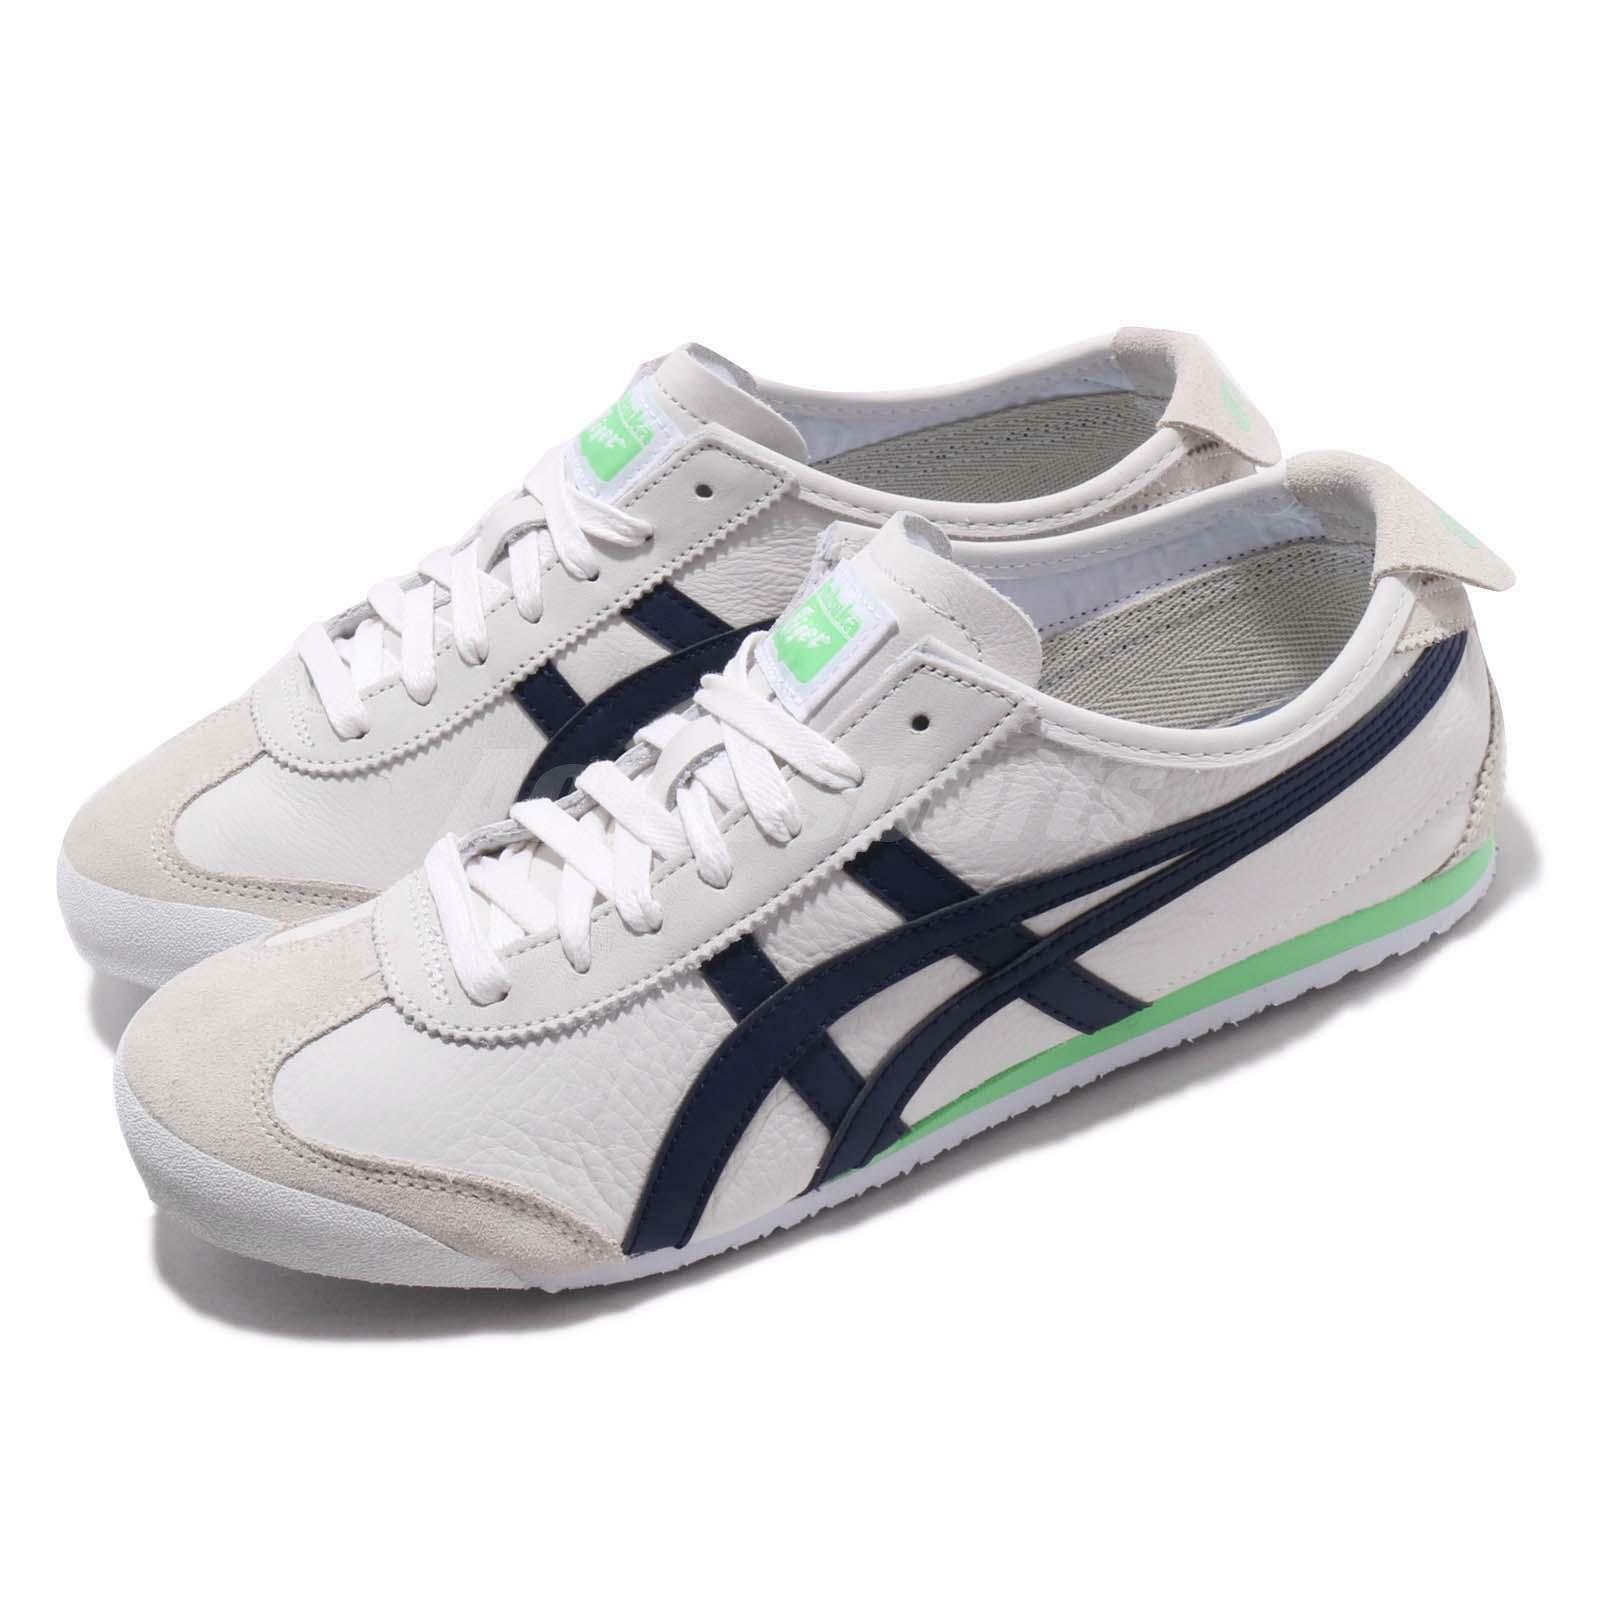 Asics Onitsuka Tiger Mexico 66 White Peacoat Green Men Running shoes 1183A359-101